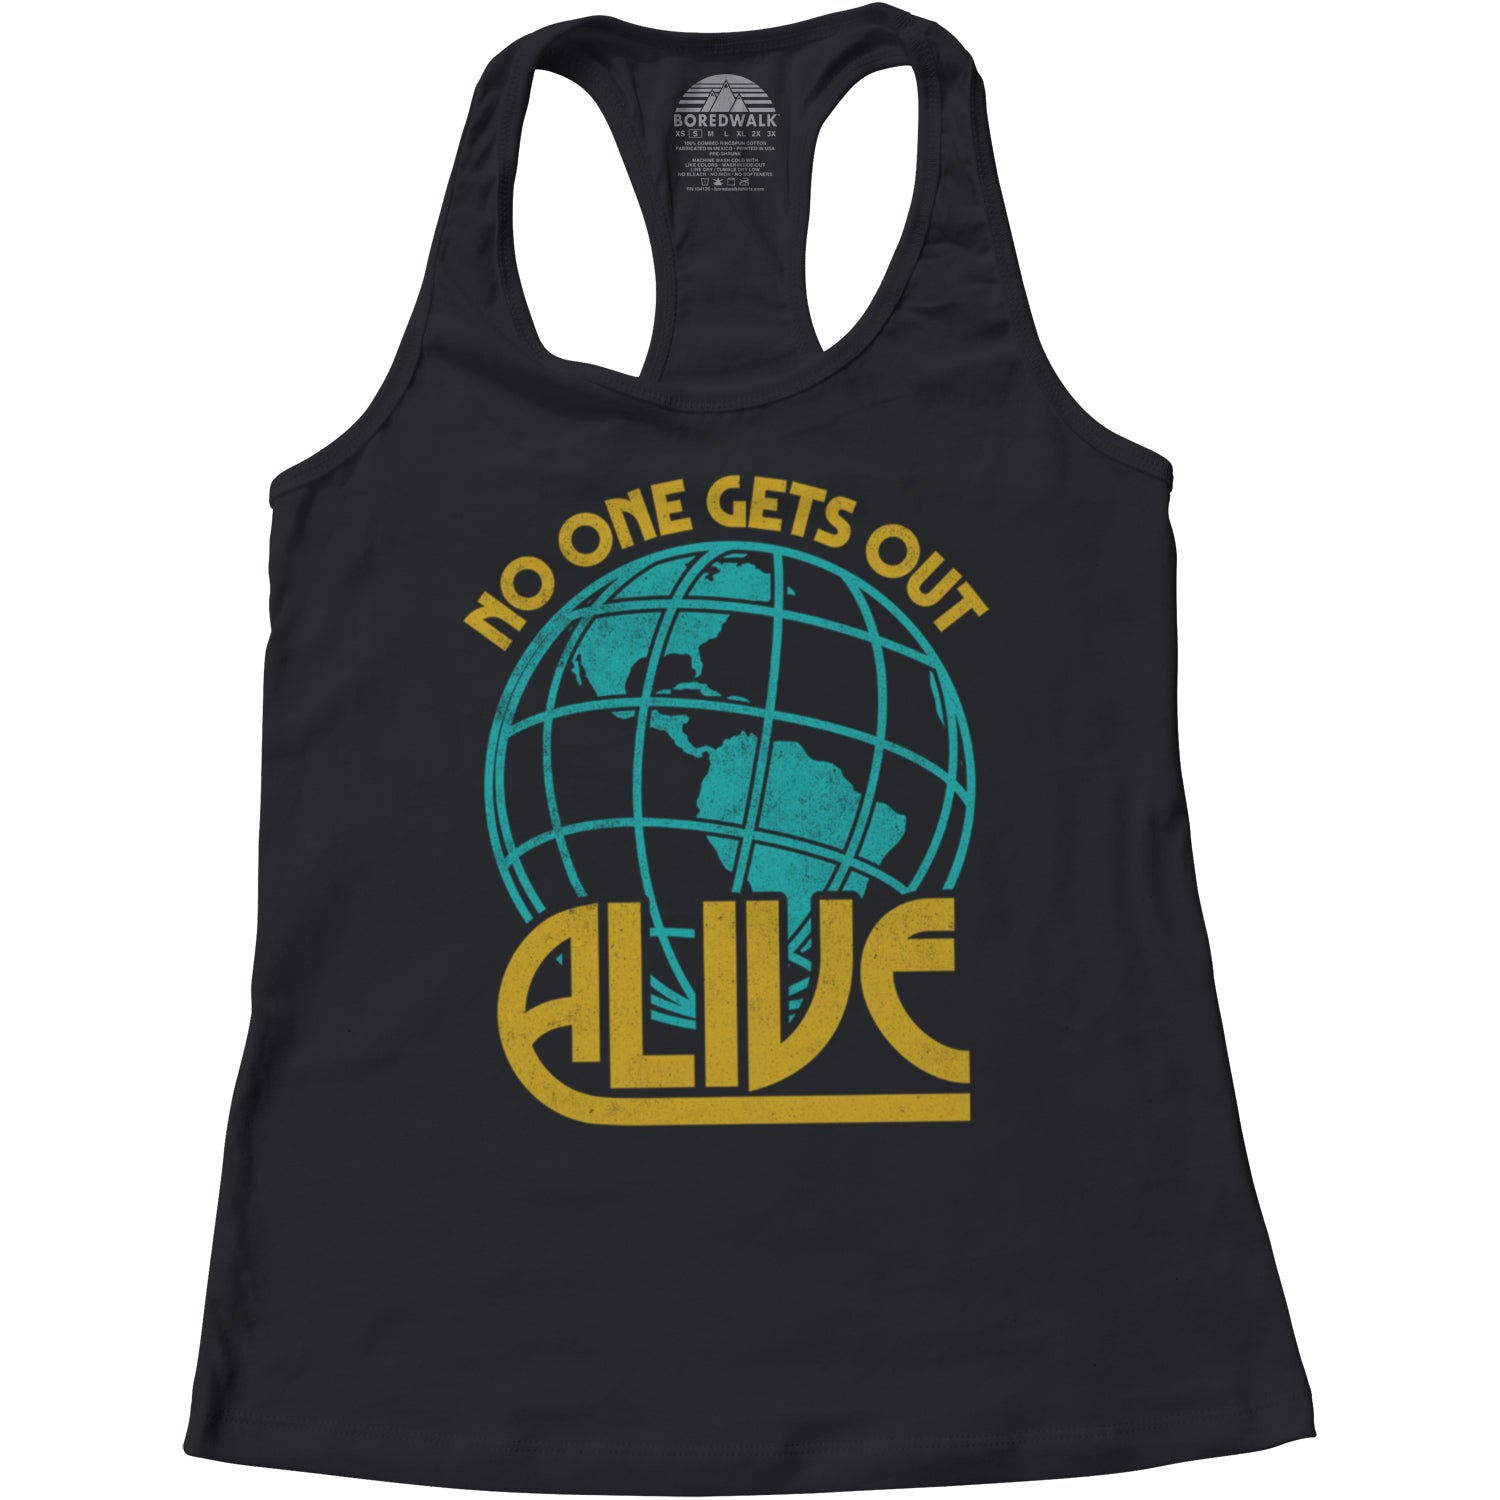 Women's No One Gets Out Alive Racerback Tank Top